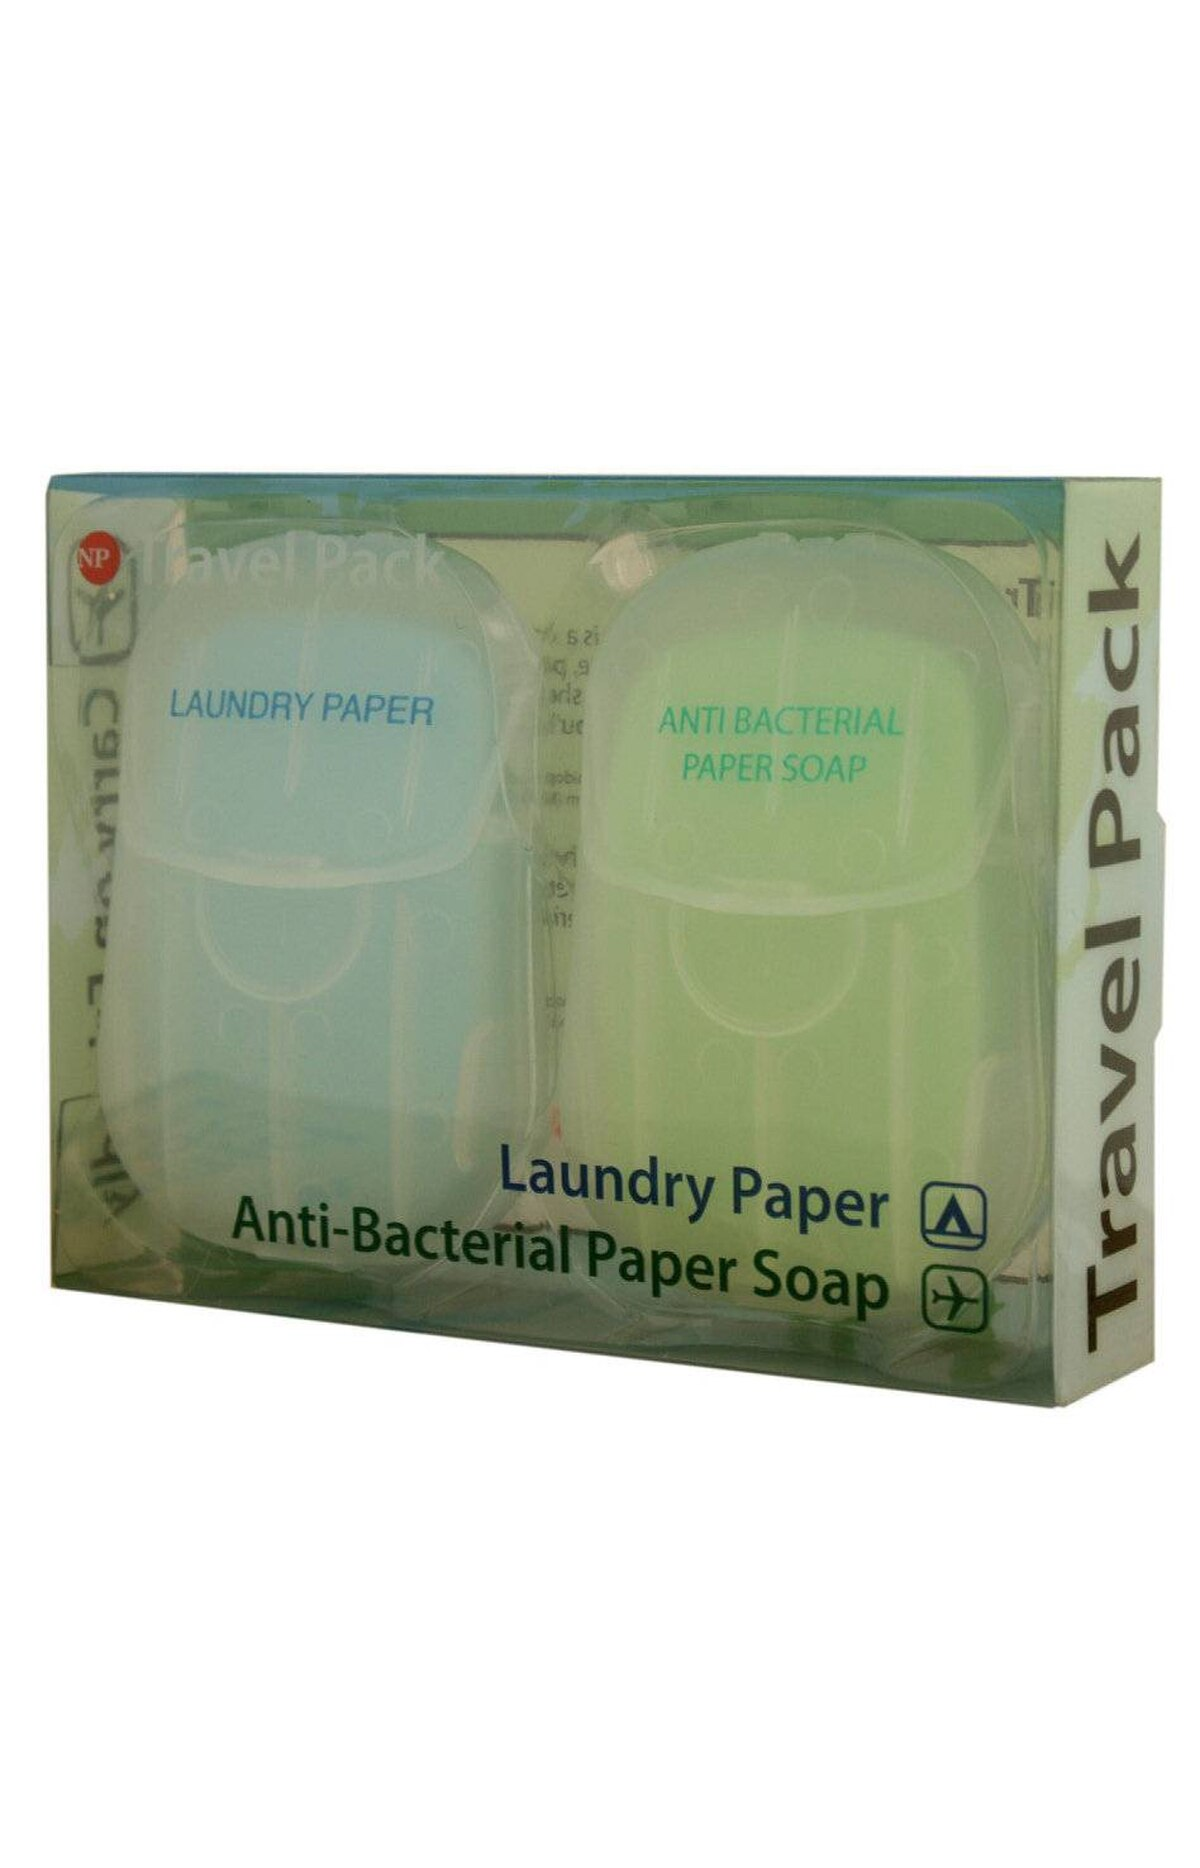 Sheets of soap Ever been faced with an empty soap dispenser in a public washroom? Stay fresh wherever you go with the pocket-sized Paper Soap Travel Pack. Its antibacterial soap sheets are carry-on friendly and dissolve as soon as water is added. The set also comes with laundry sheets that can be used for emergency stain cleanups. $10 (U.S.); flight001.com